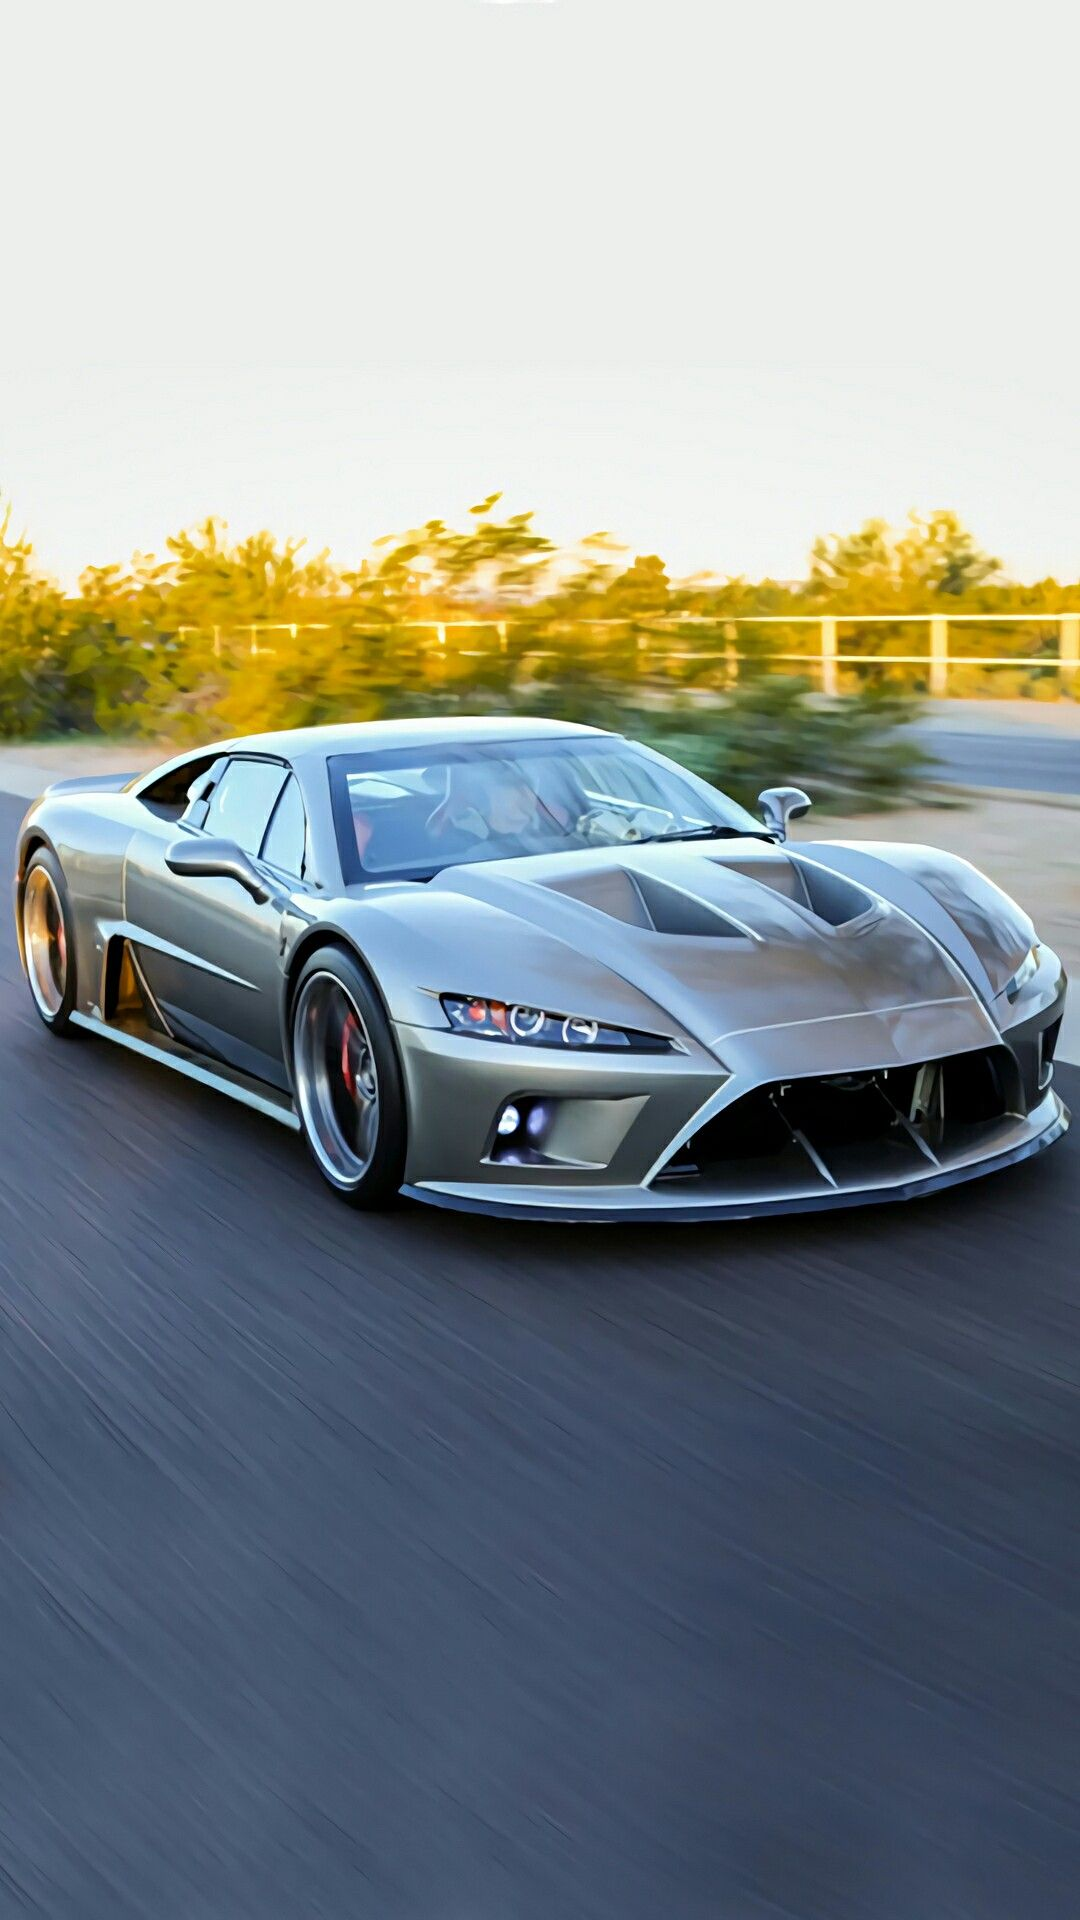 x otic concept automobiles pinterest cars supercars and